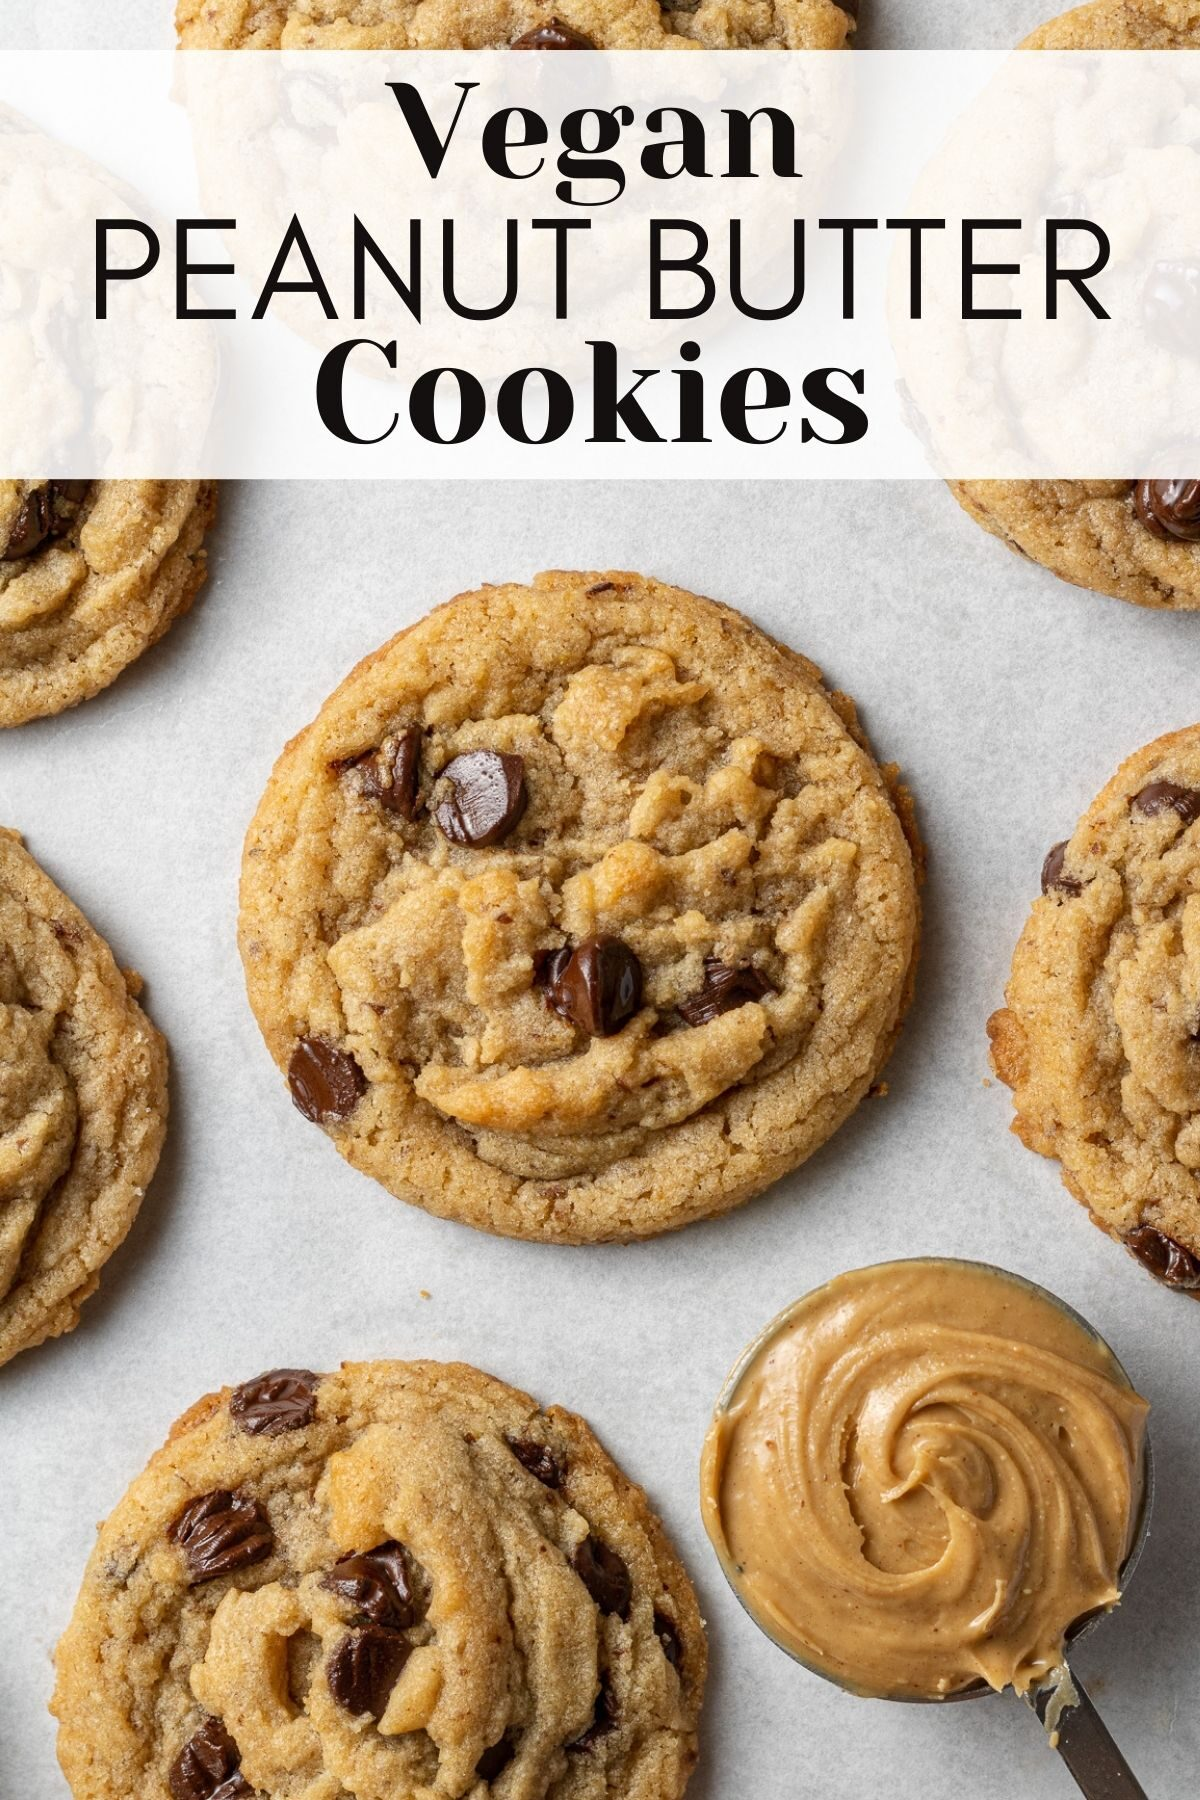 vegan peanut butter chocolate chip cookies on parchment with text overlay